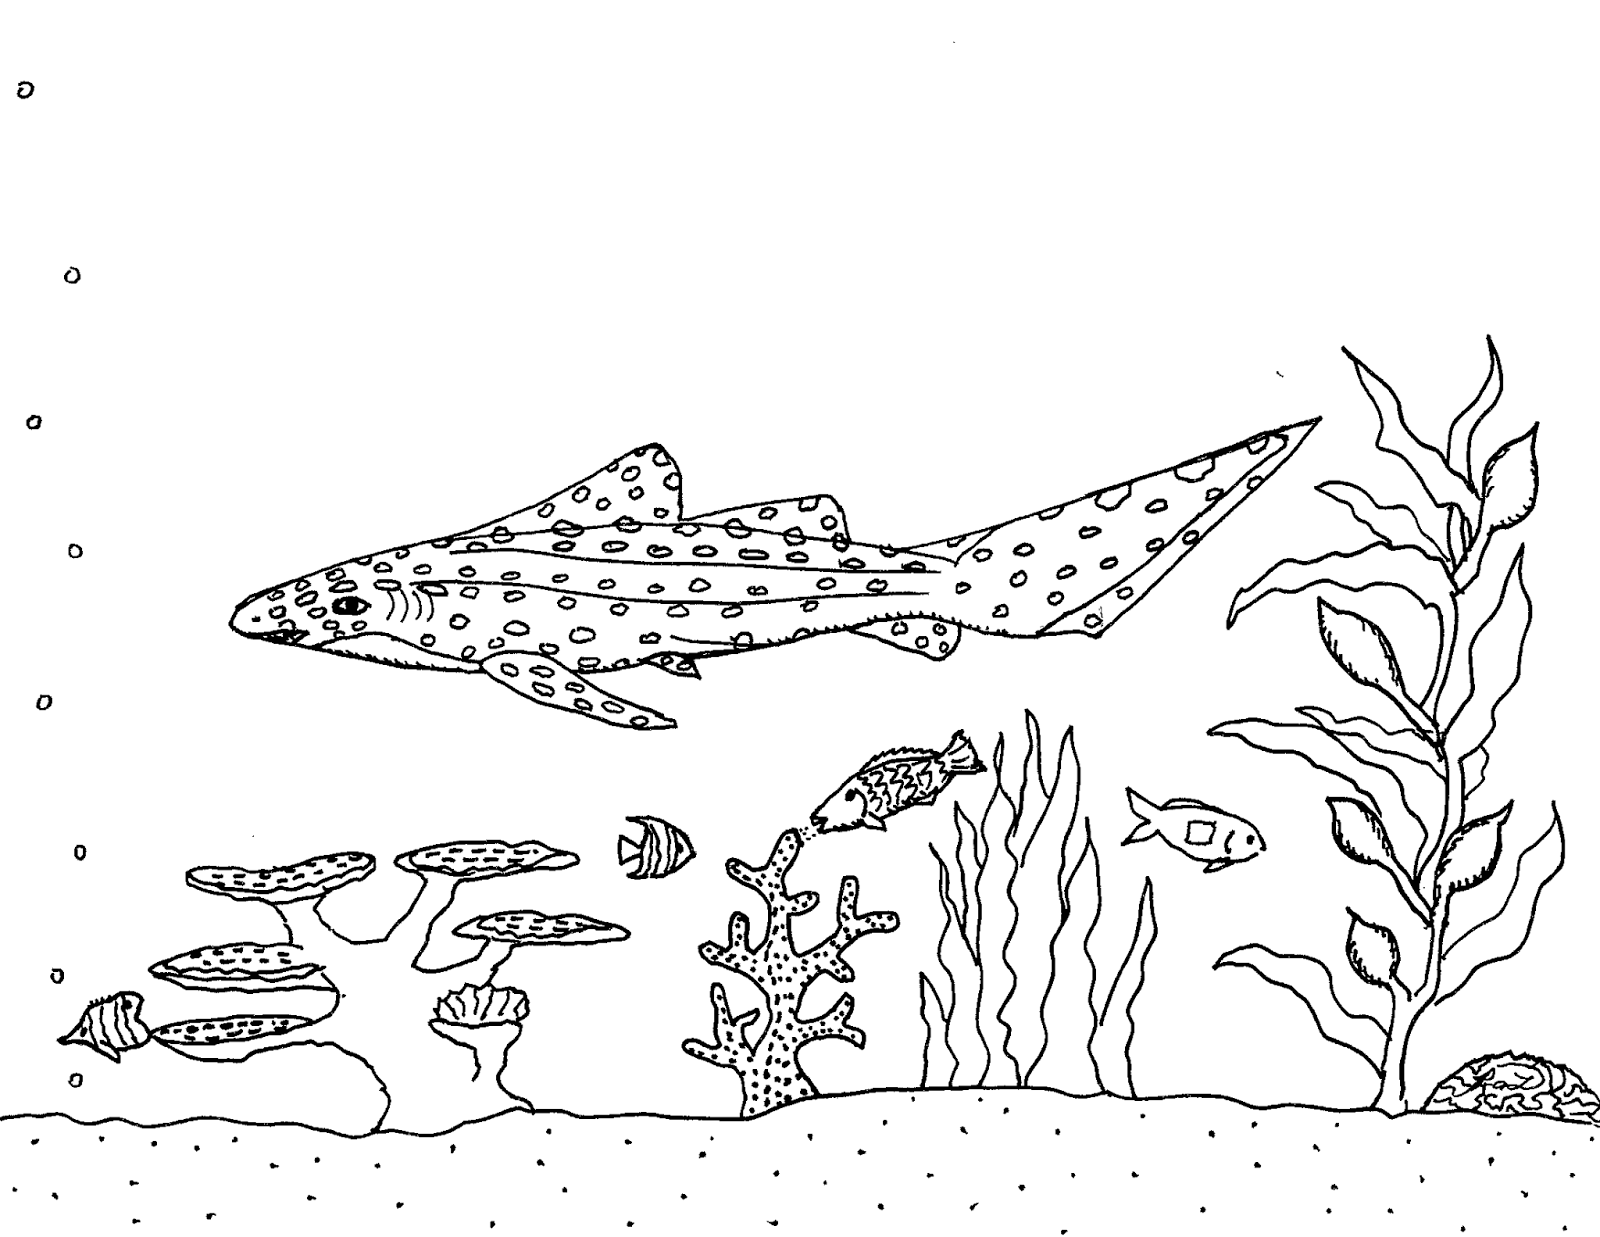 Robin's Great Coloring Pages: Leopard Shark